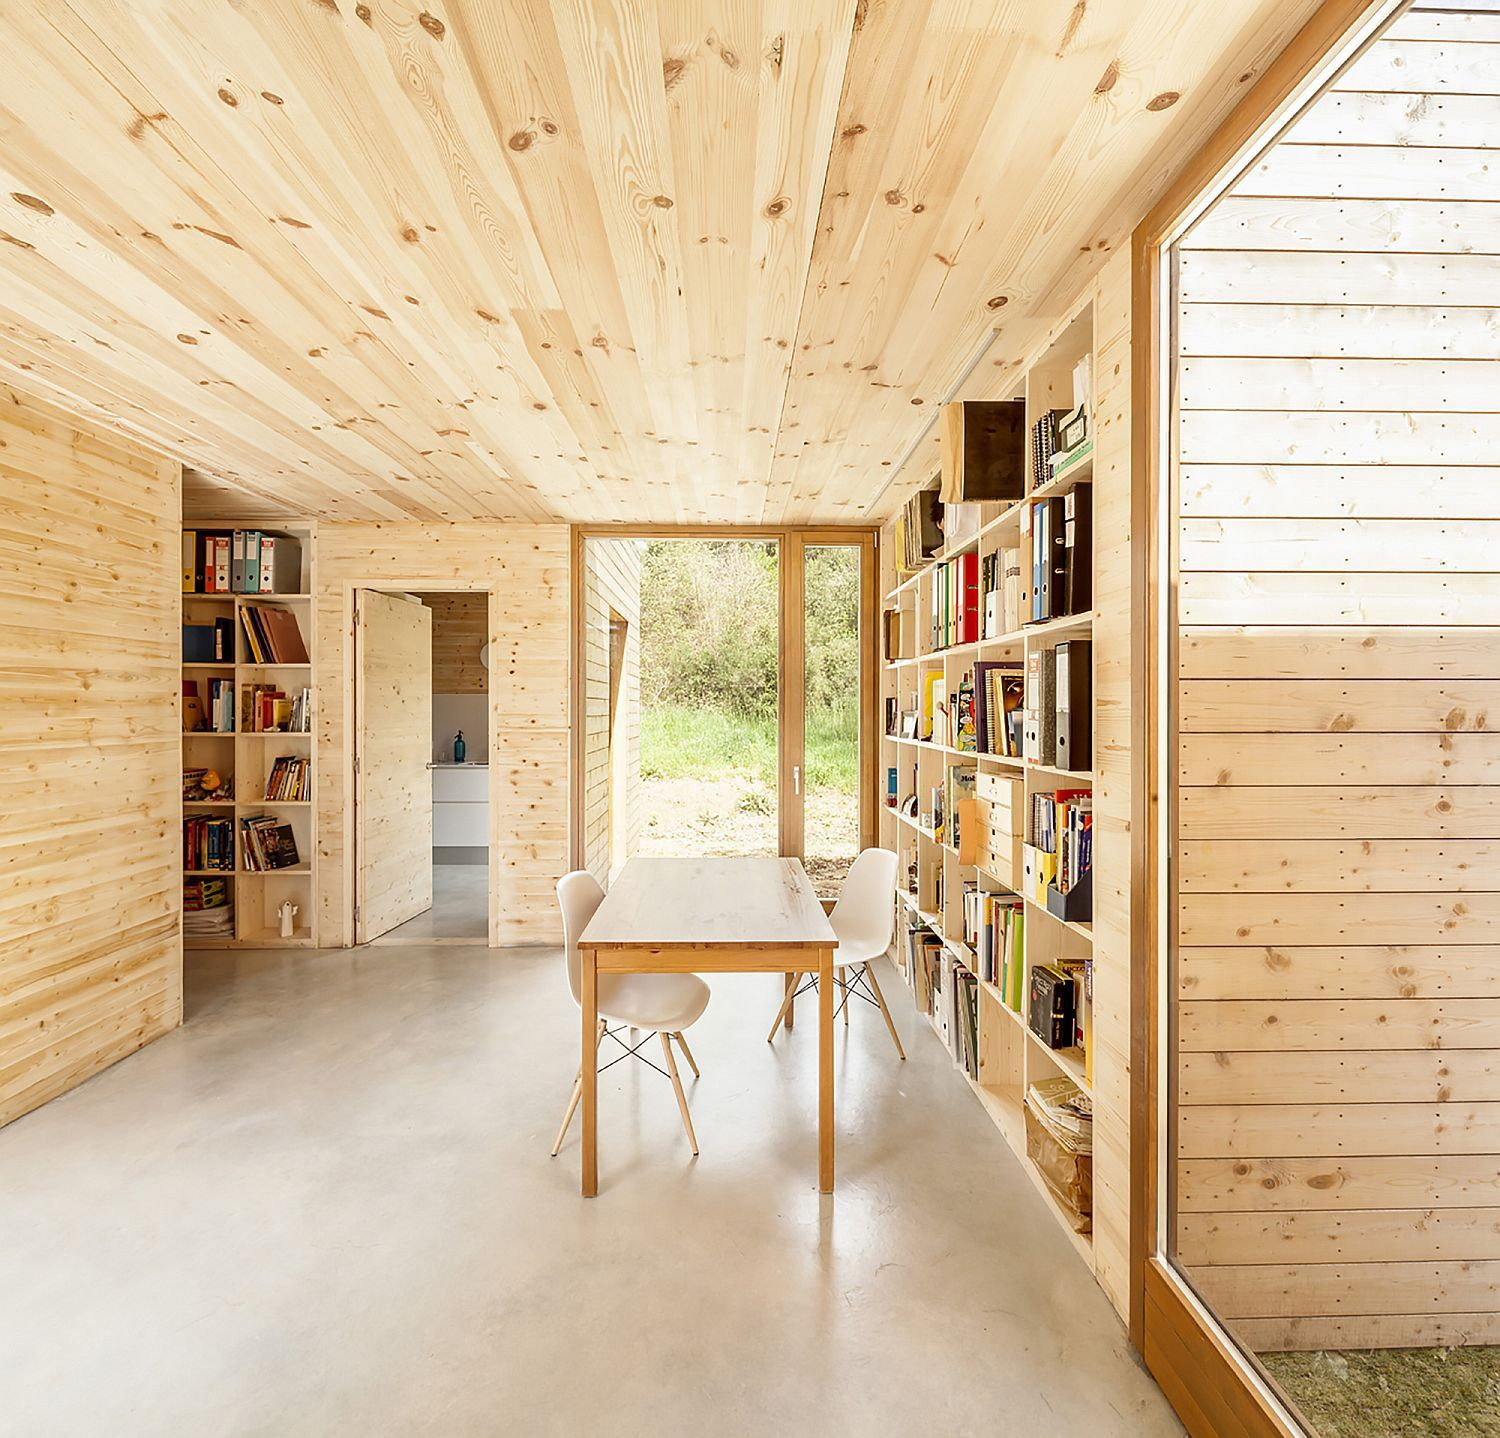 A passive house in Spain composed of six prefabricated wood boxes. It has 3 bedrooms in 1,195 sq ft.